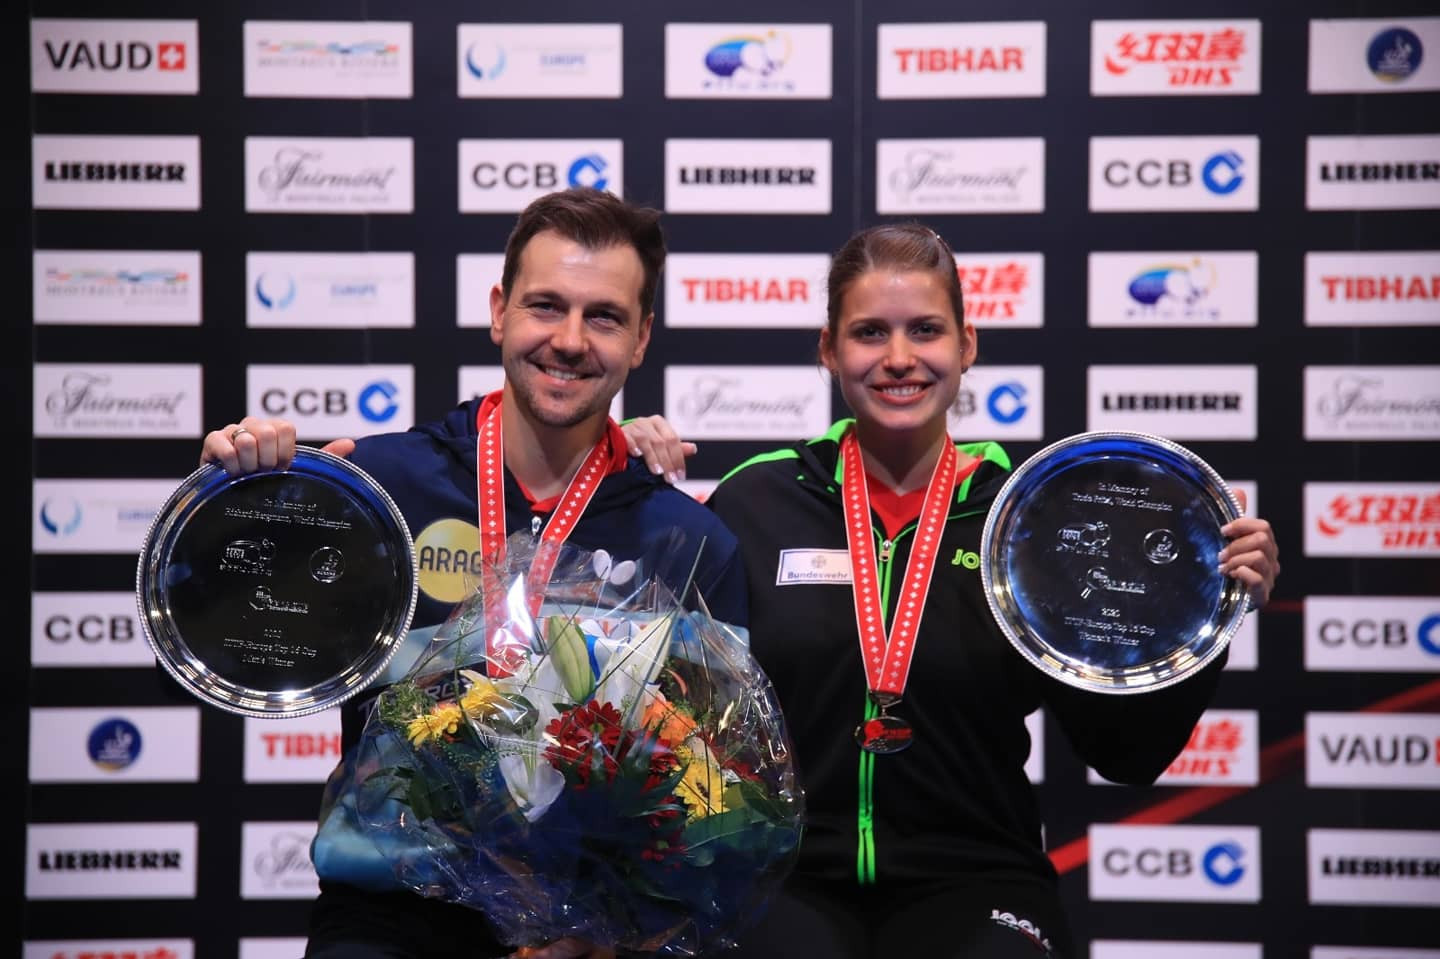 Germans win double gold at ETTU Europe Top 16 Cup